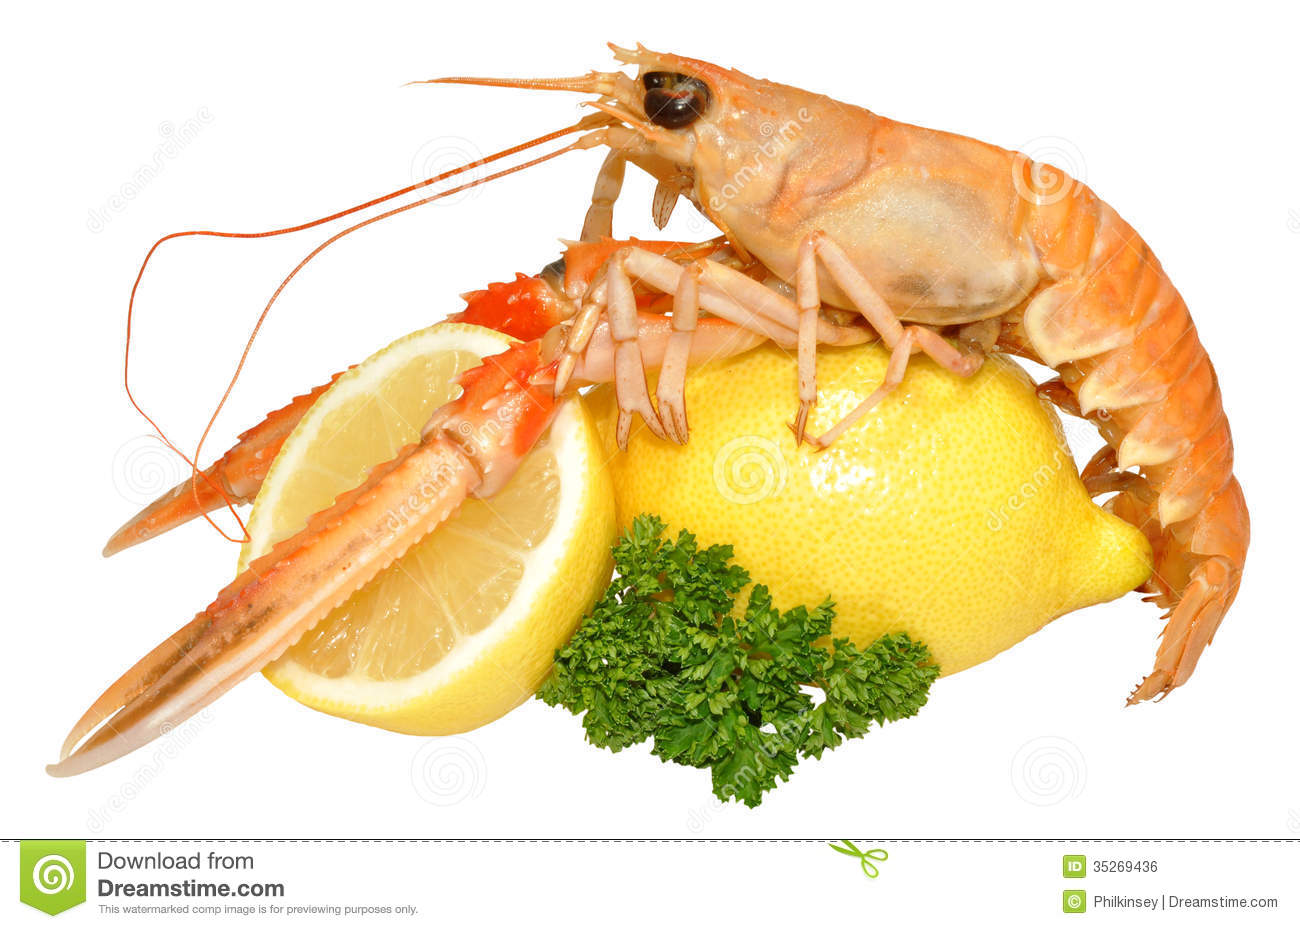 Shrimp business plan